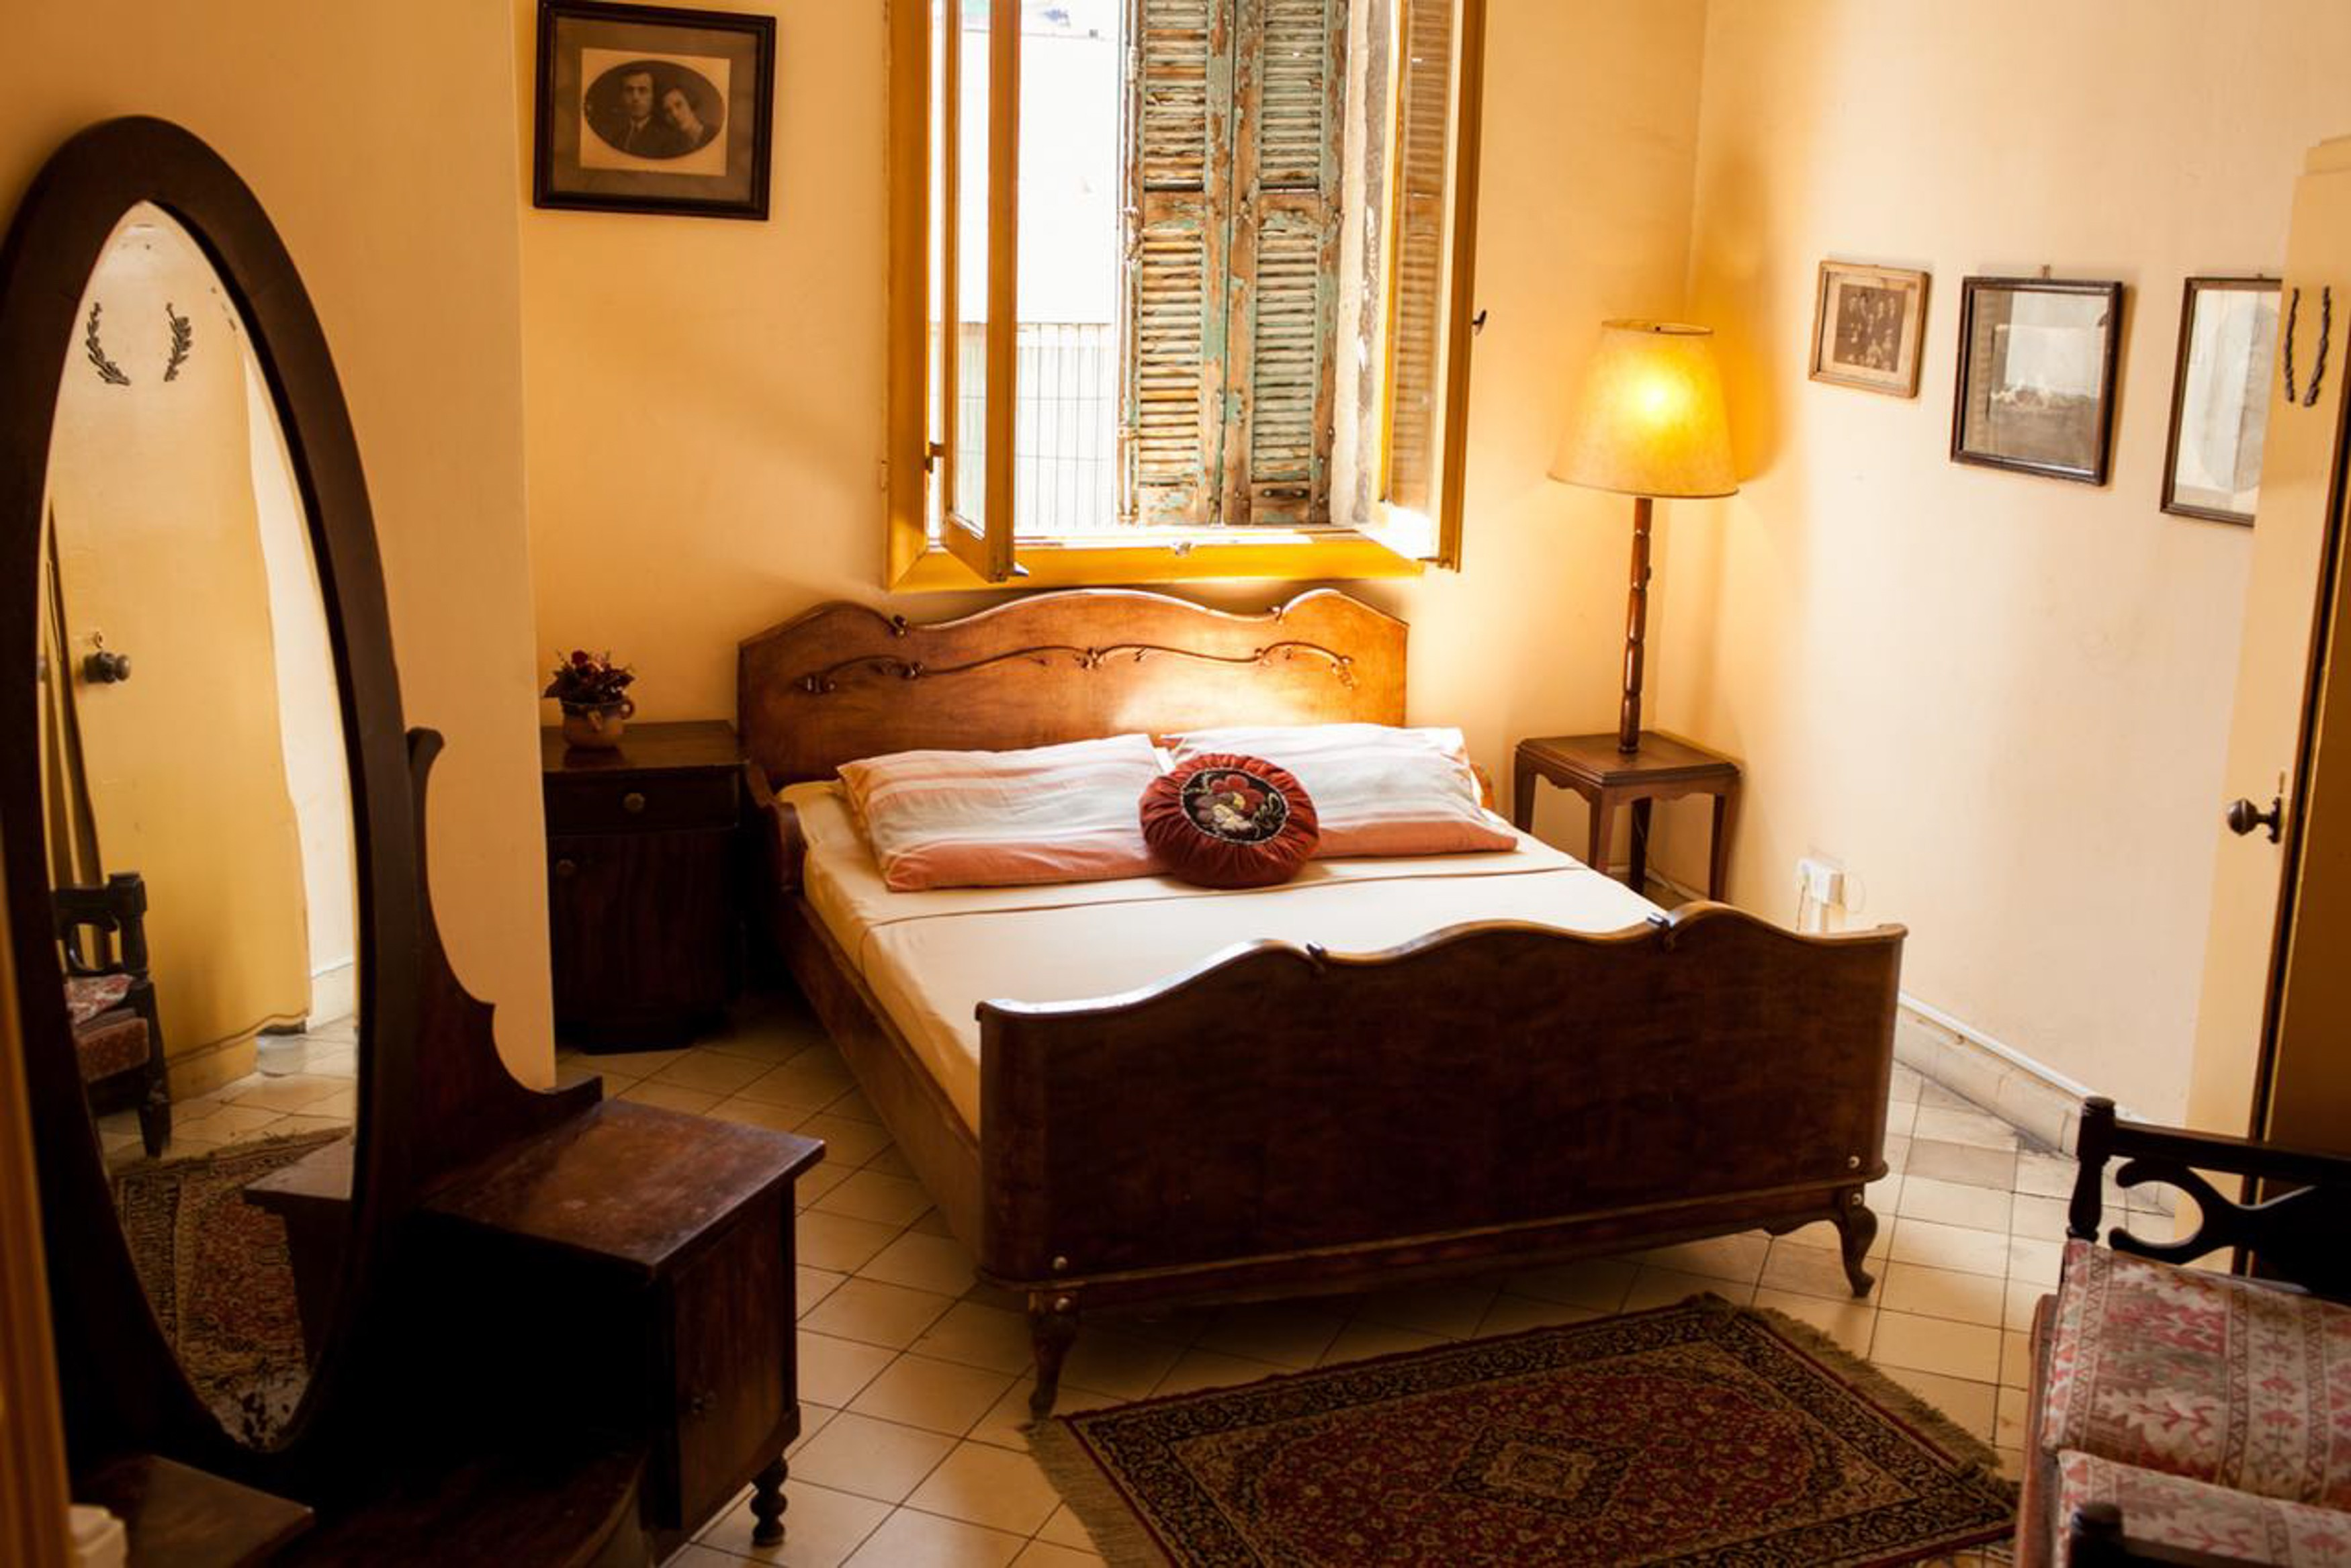 Old Jaffa Hostel has a mix of private rooms and dorms